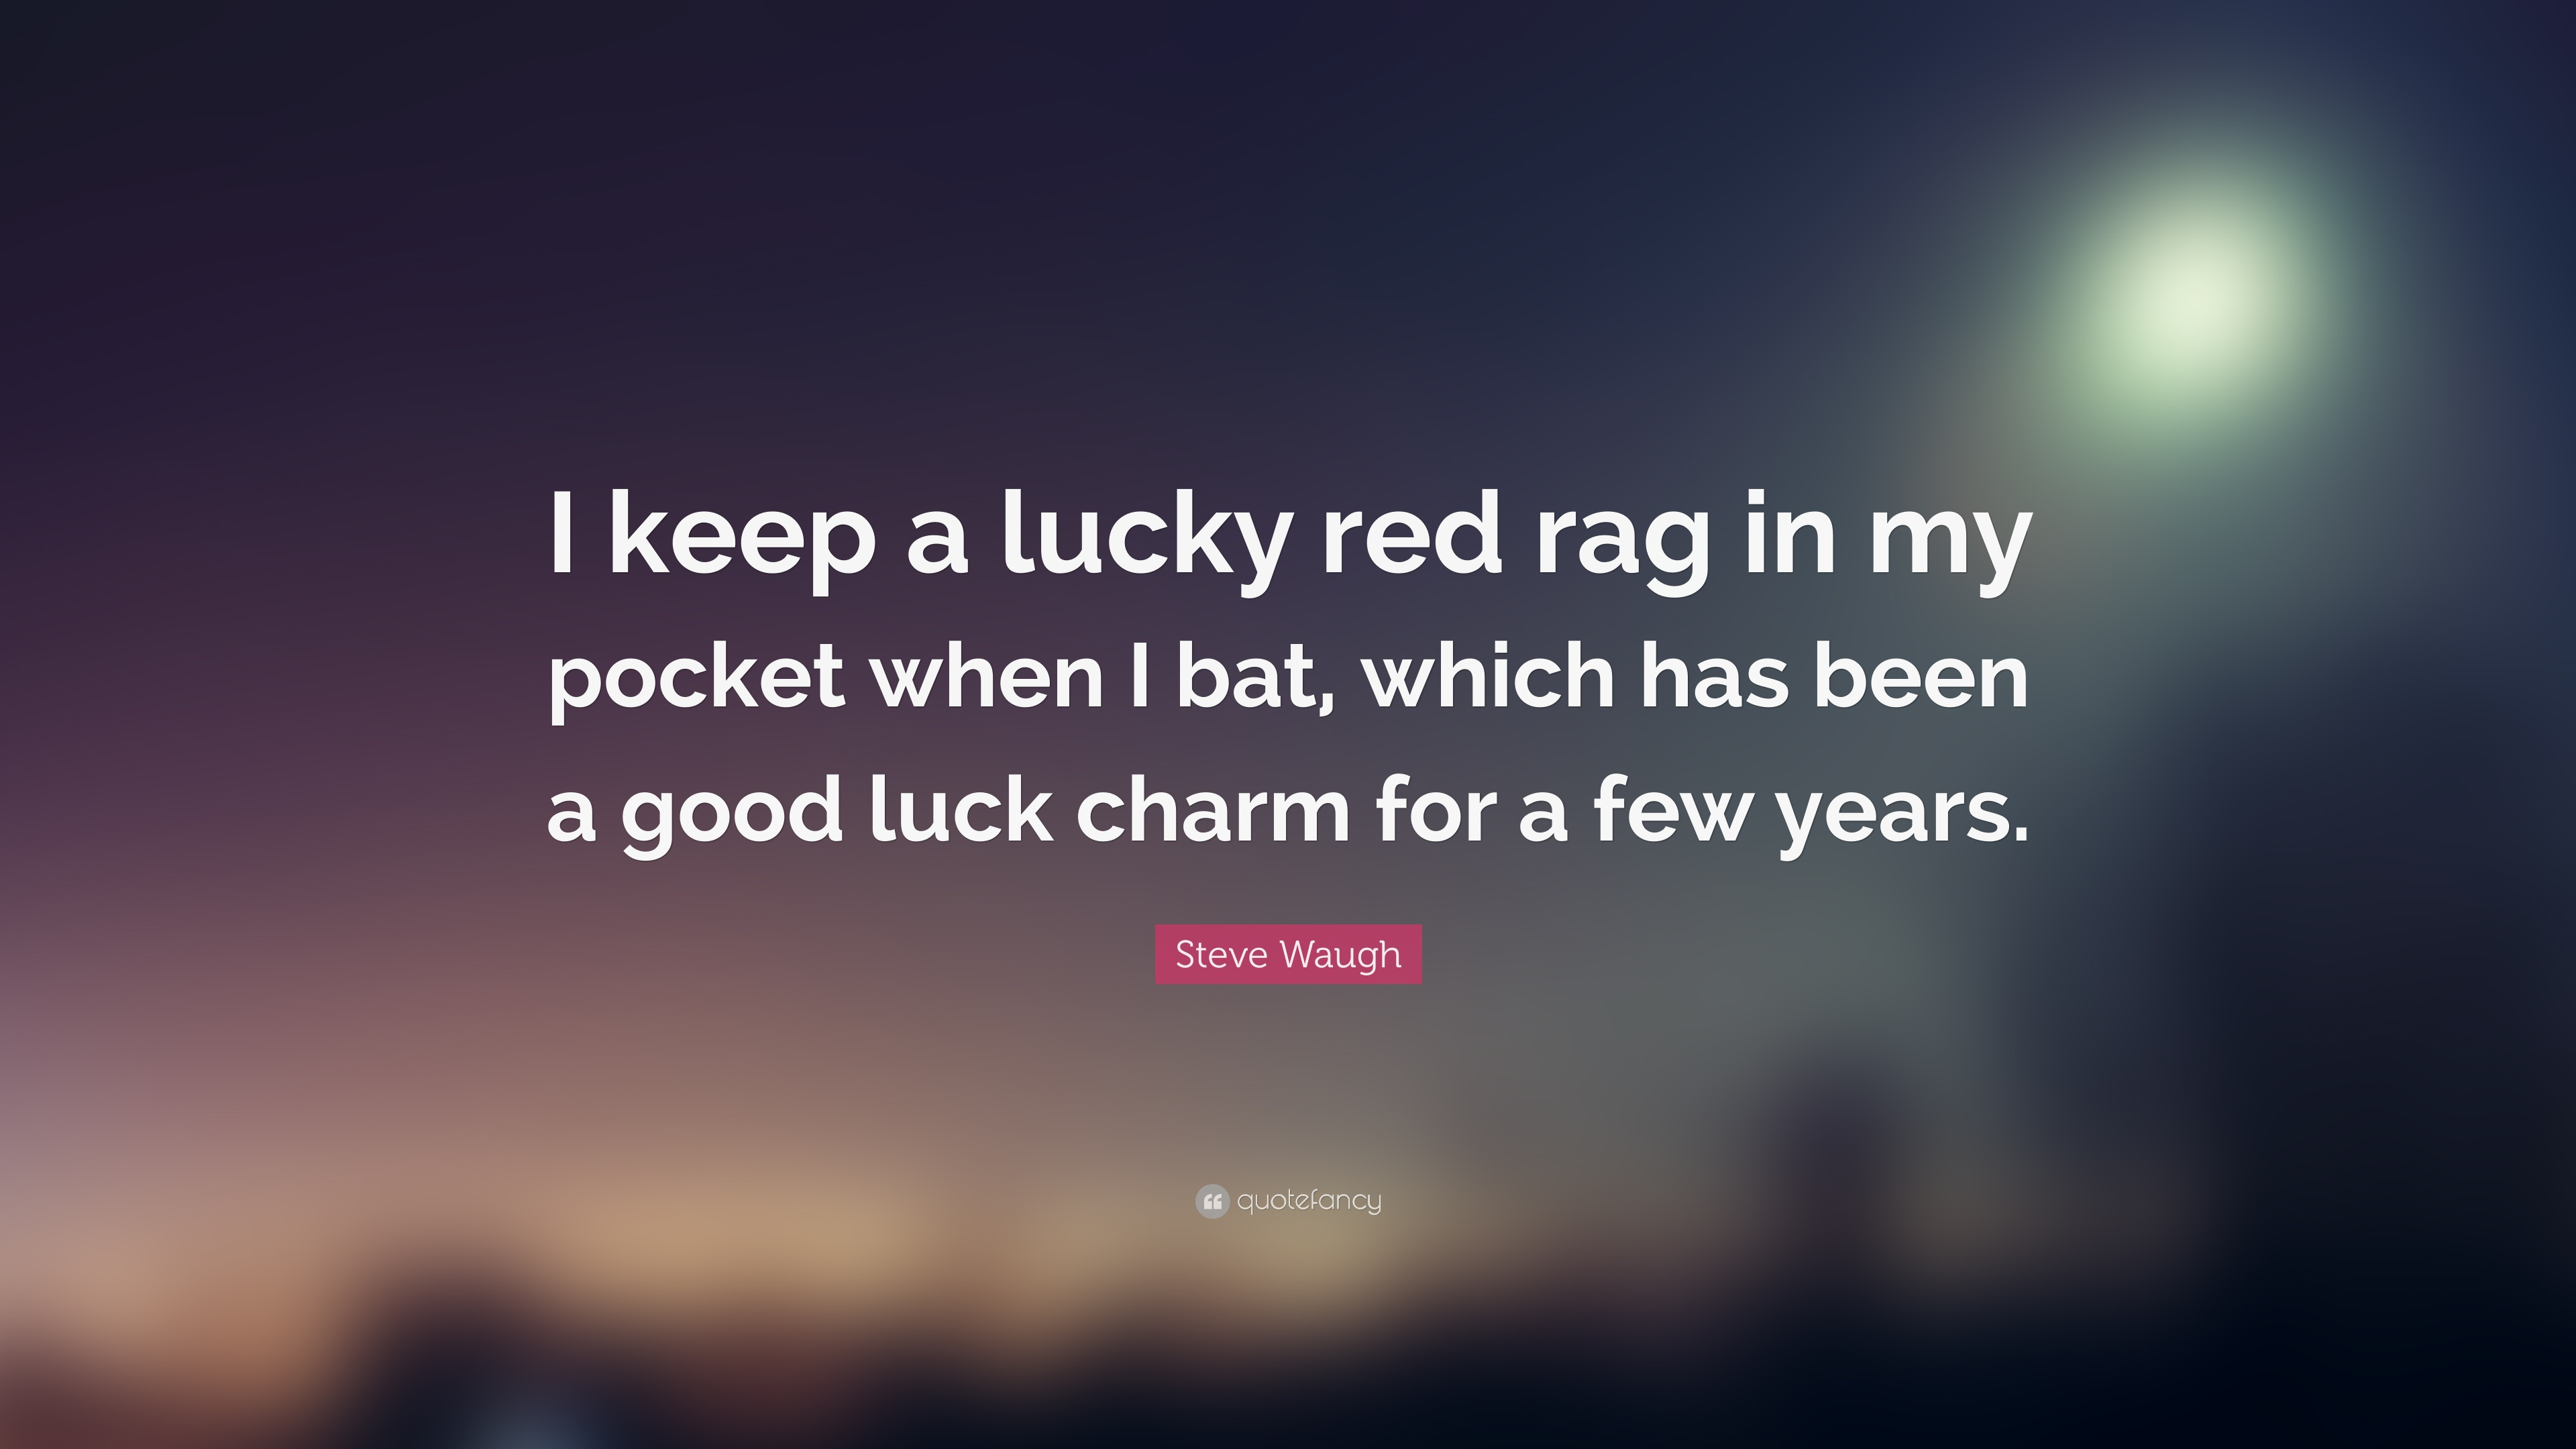 Steve Waugh Quote I Keep A Lucky Red Rag In My Pocket When I Bat